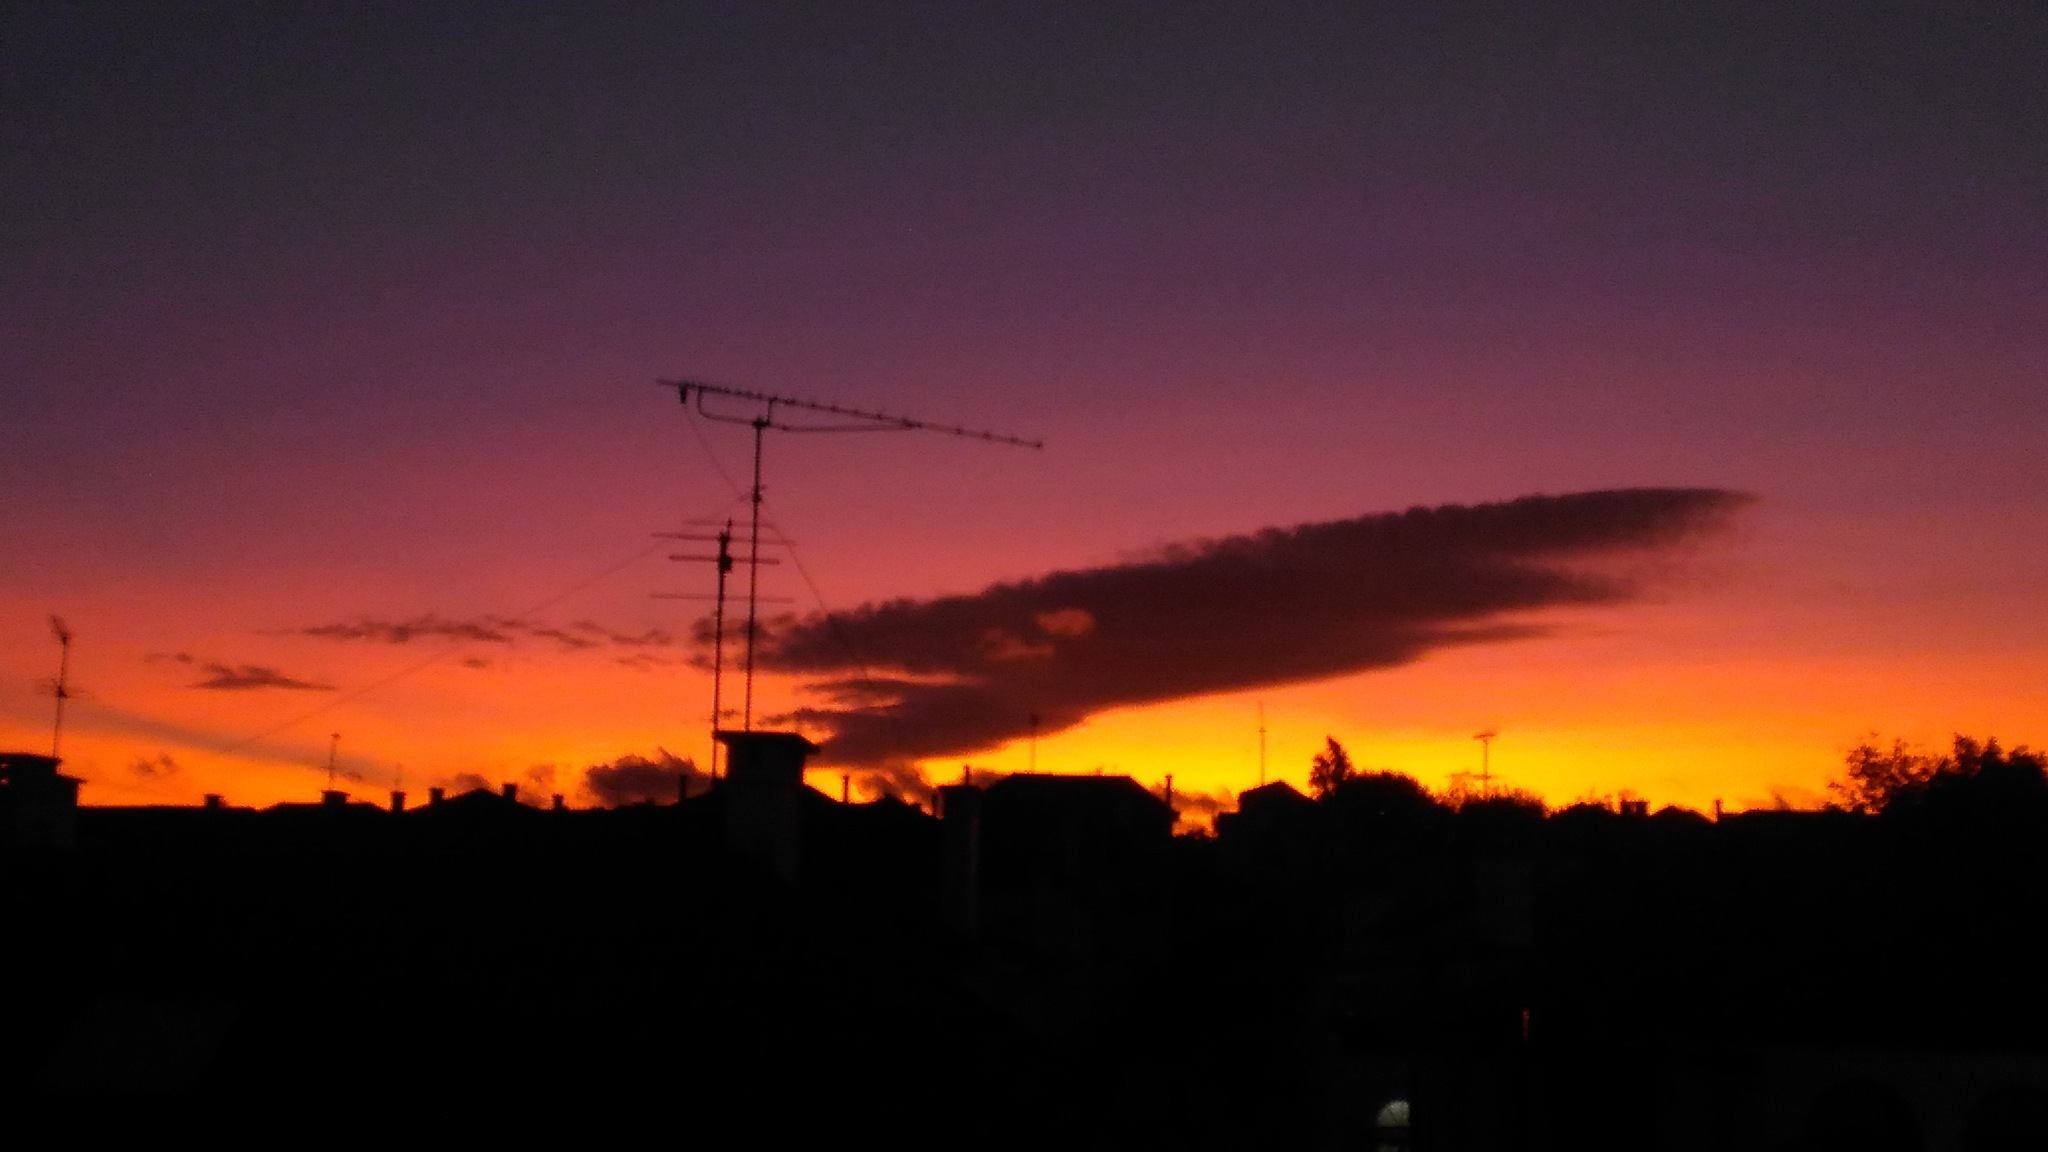 Sunset by Pedro